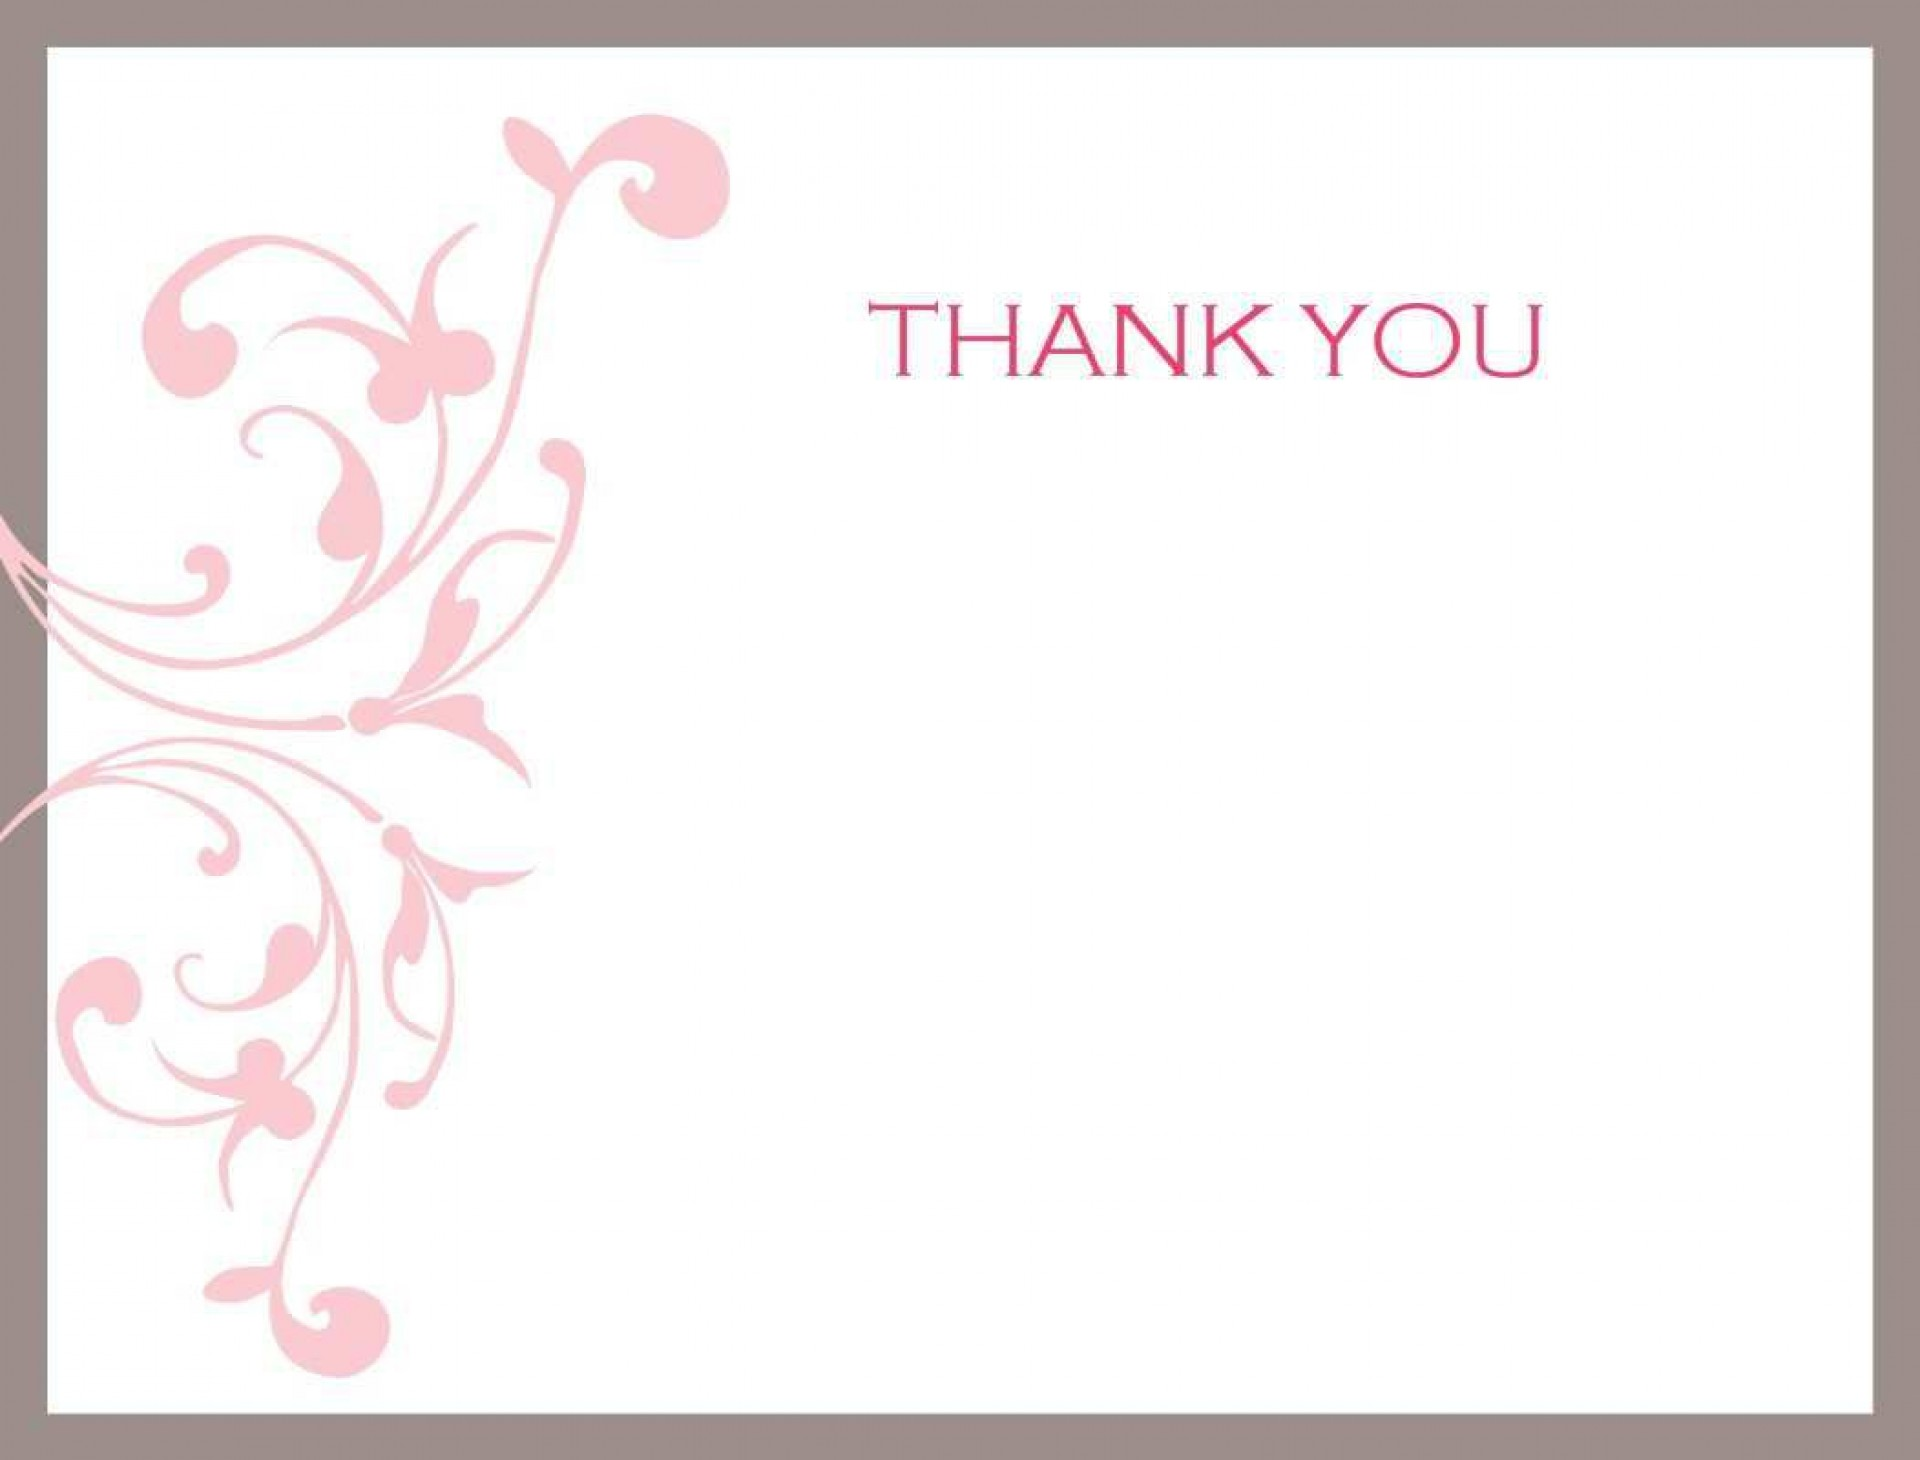 007 Unforgettable Thank You Note Card Template Word Sample 1920